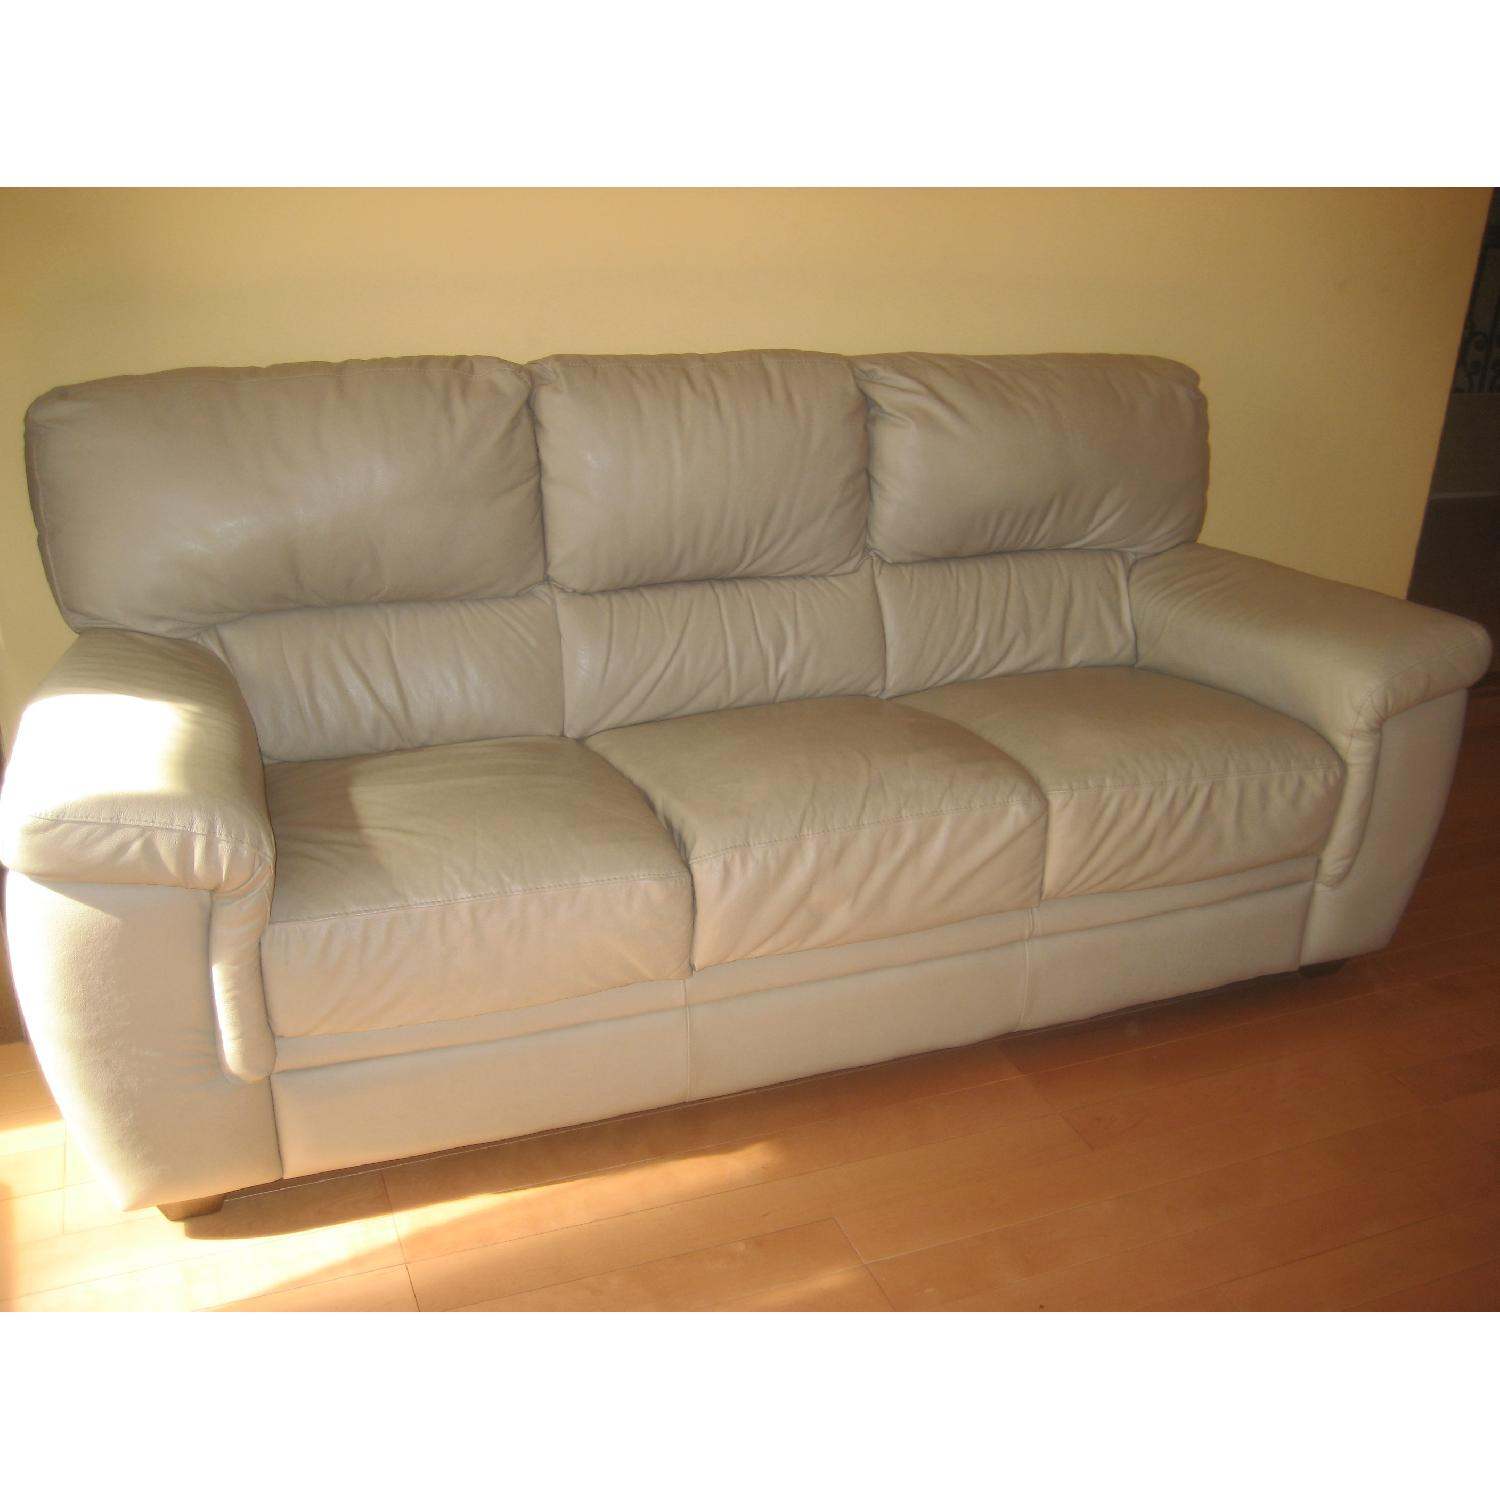 Used sofas for sale in nyc aptdeco for Beige leather sectional sofa sale